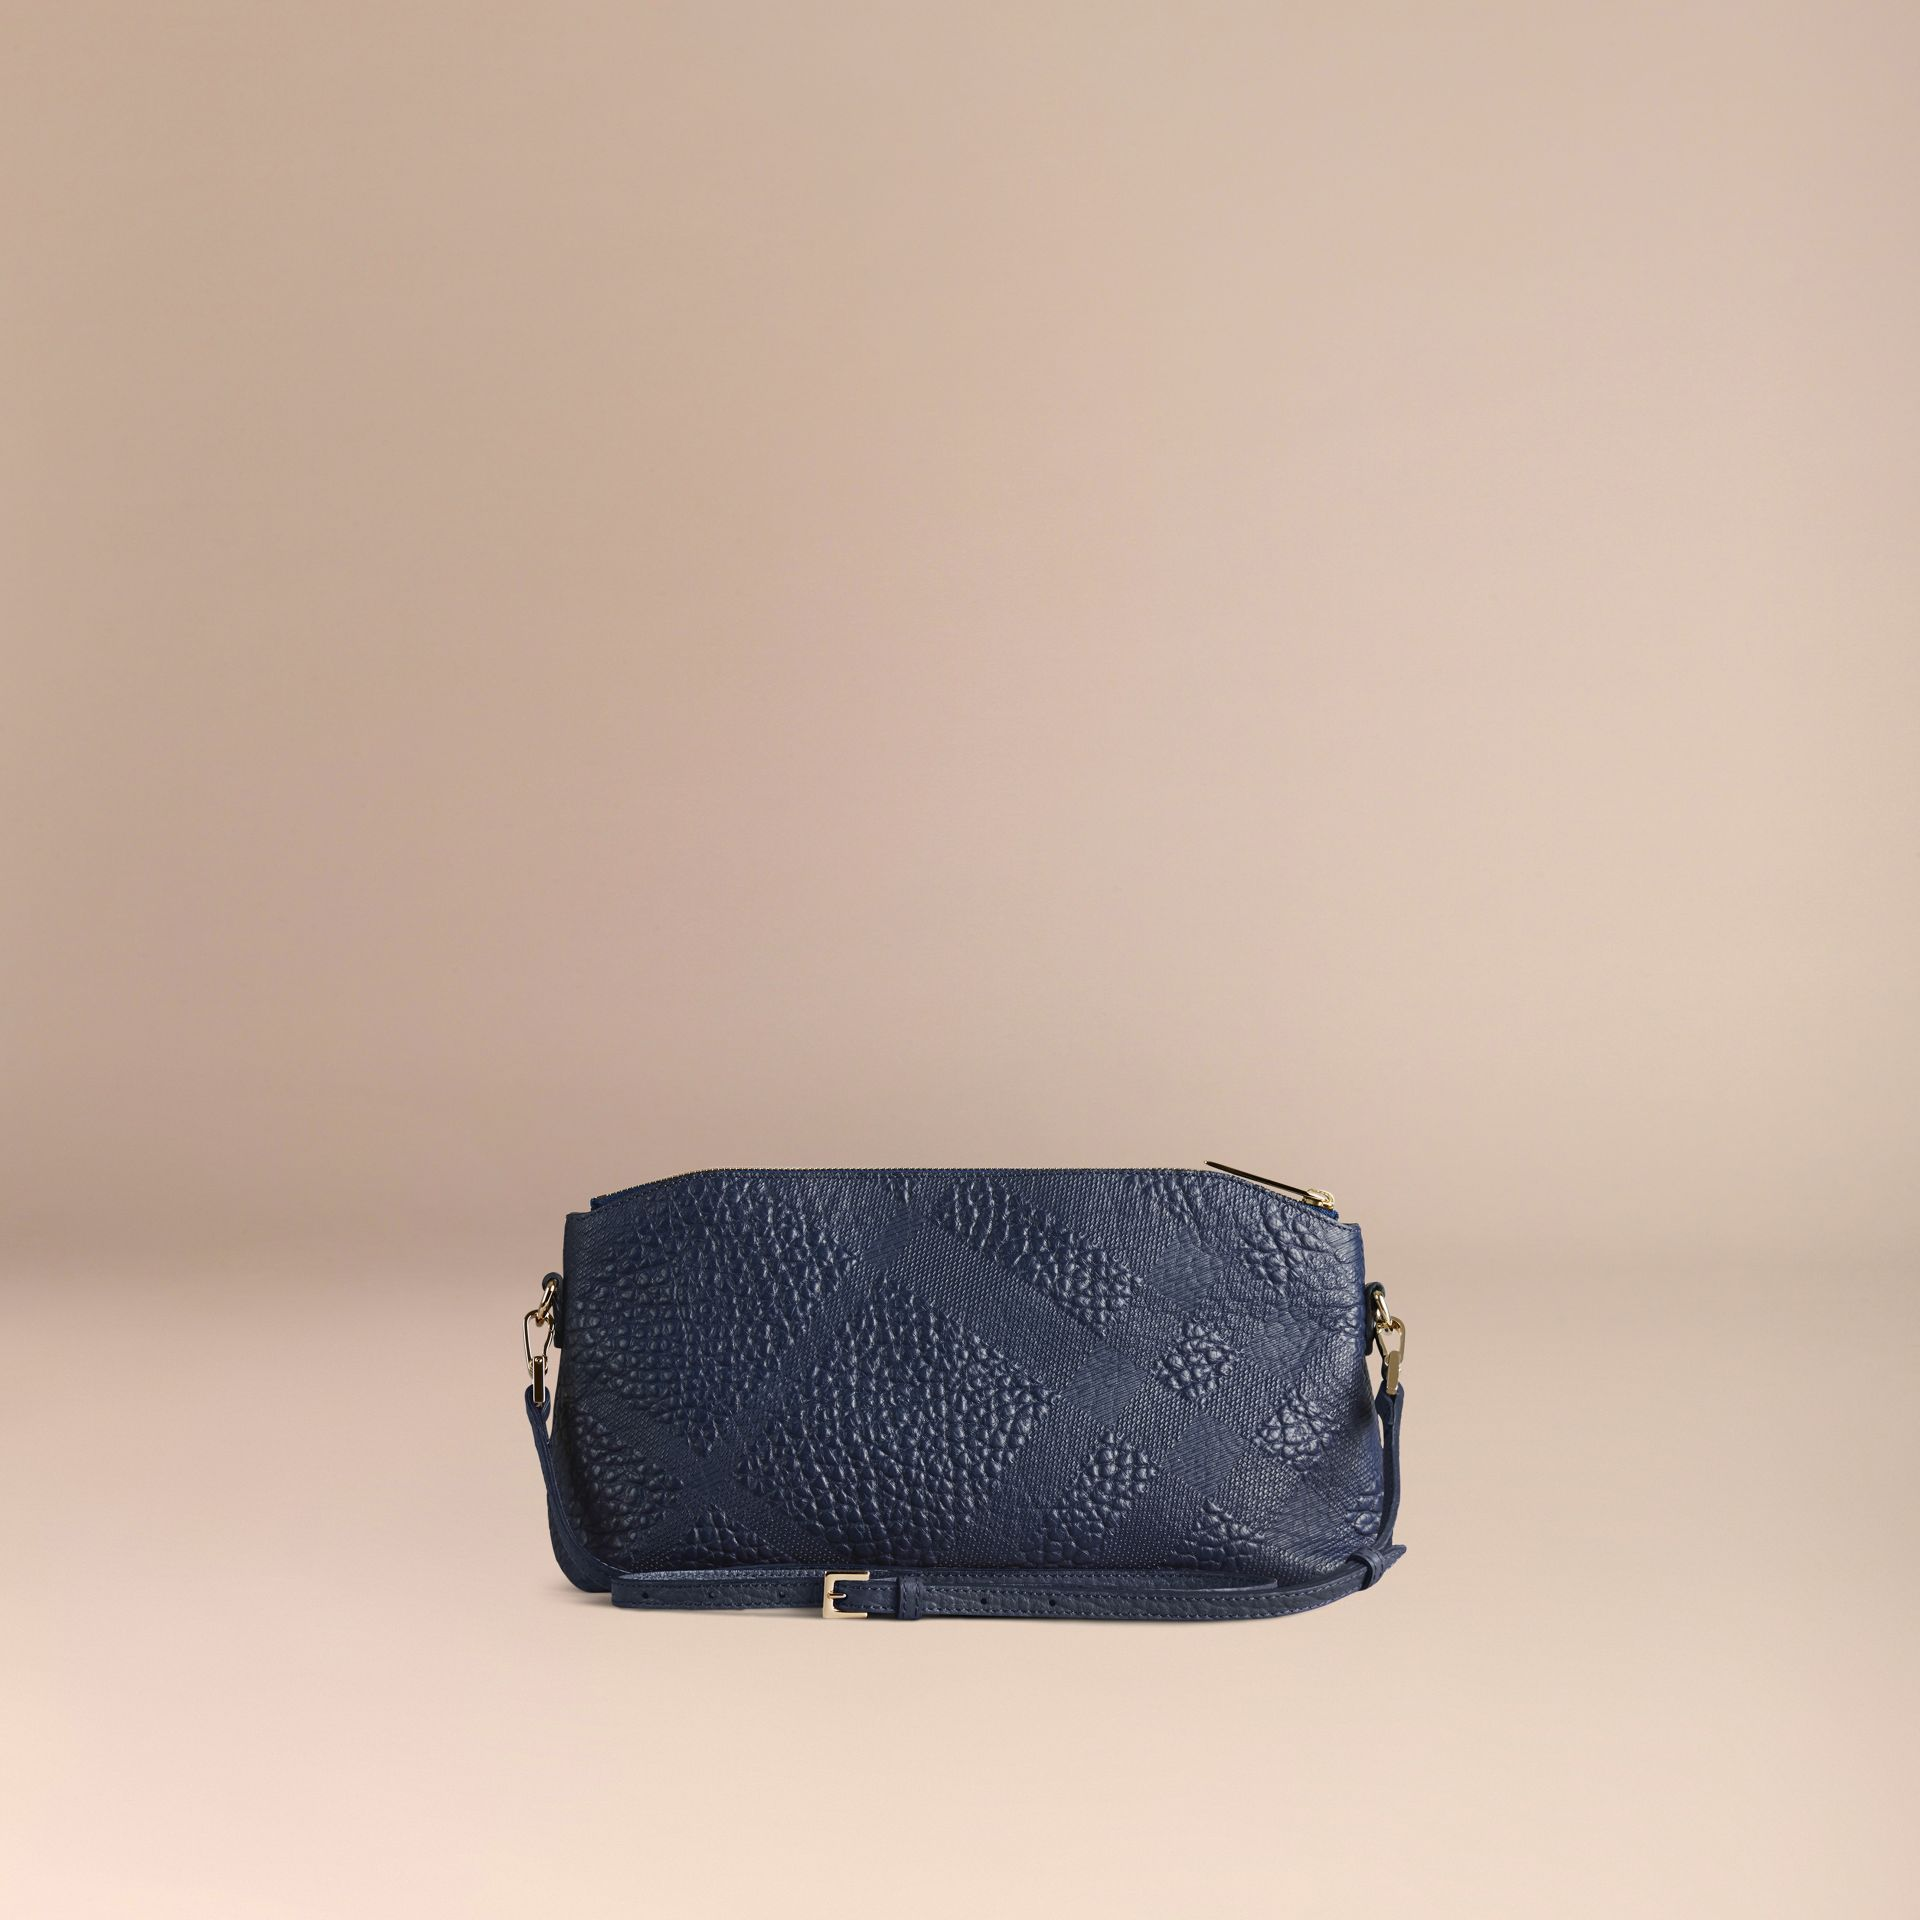 Small Embossed Check Leather Clutch Bag in Blue Carbon - gallery image 5